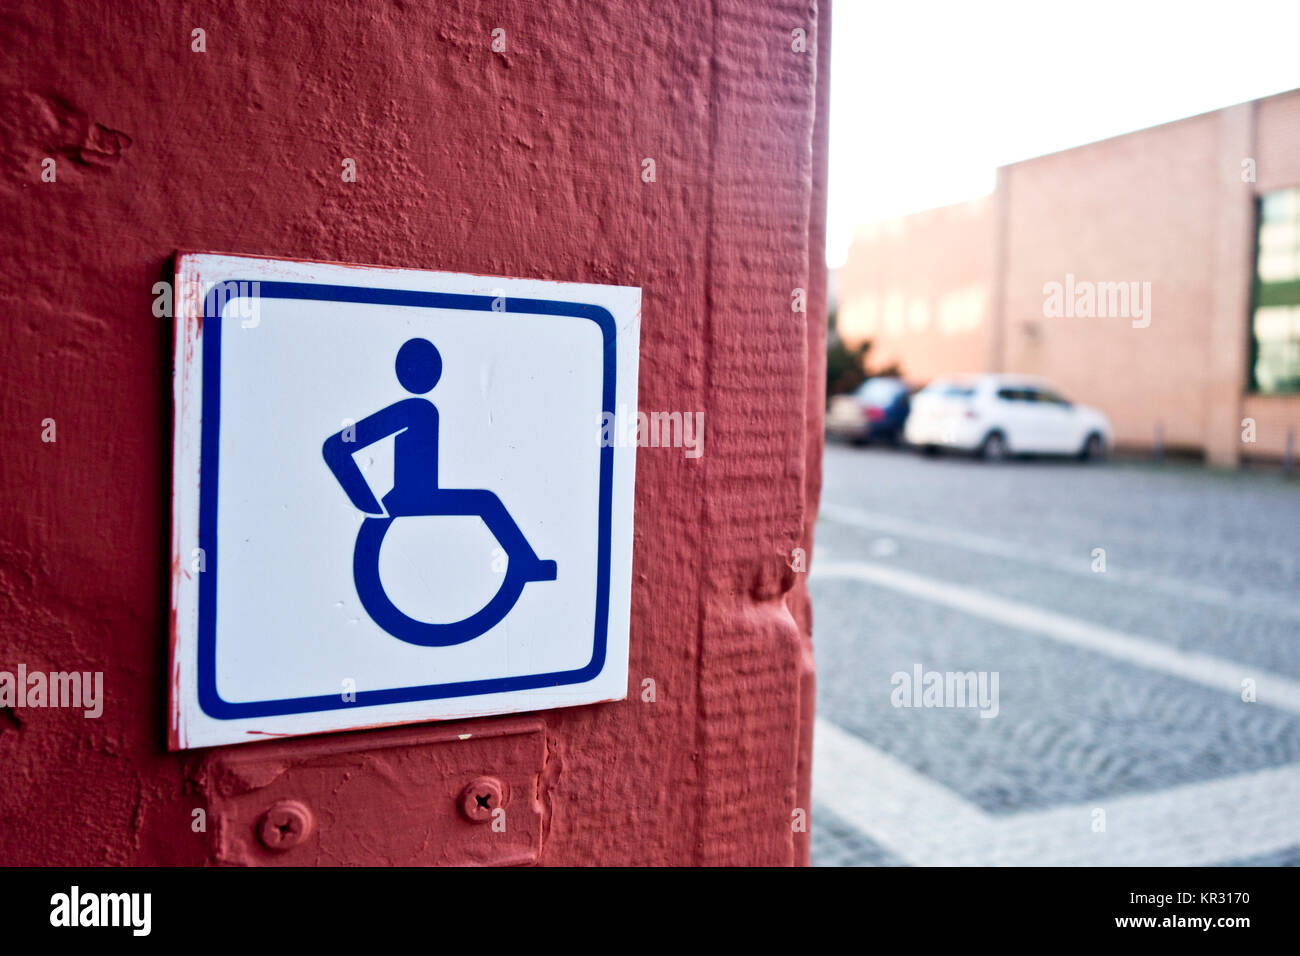 access for disabled sign on a wall - Stock Image